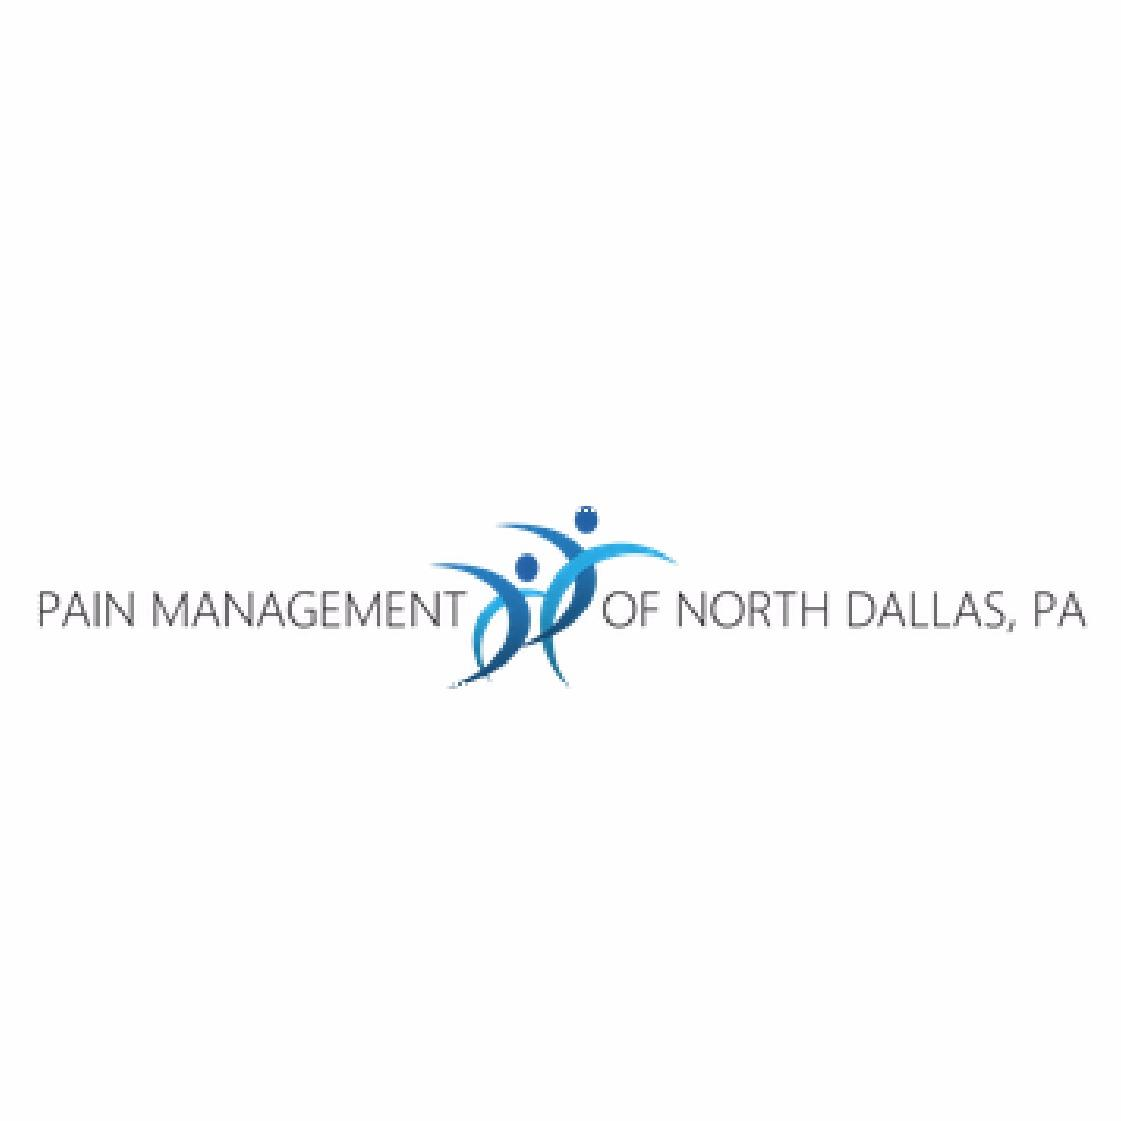 Pain Management of North Dallas